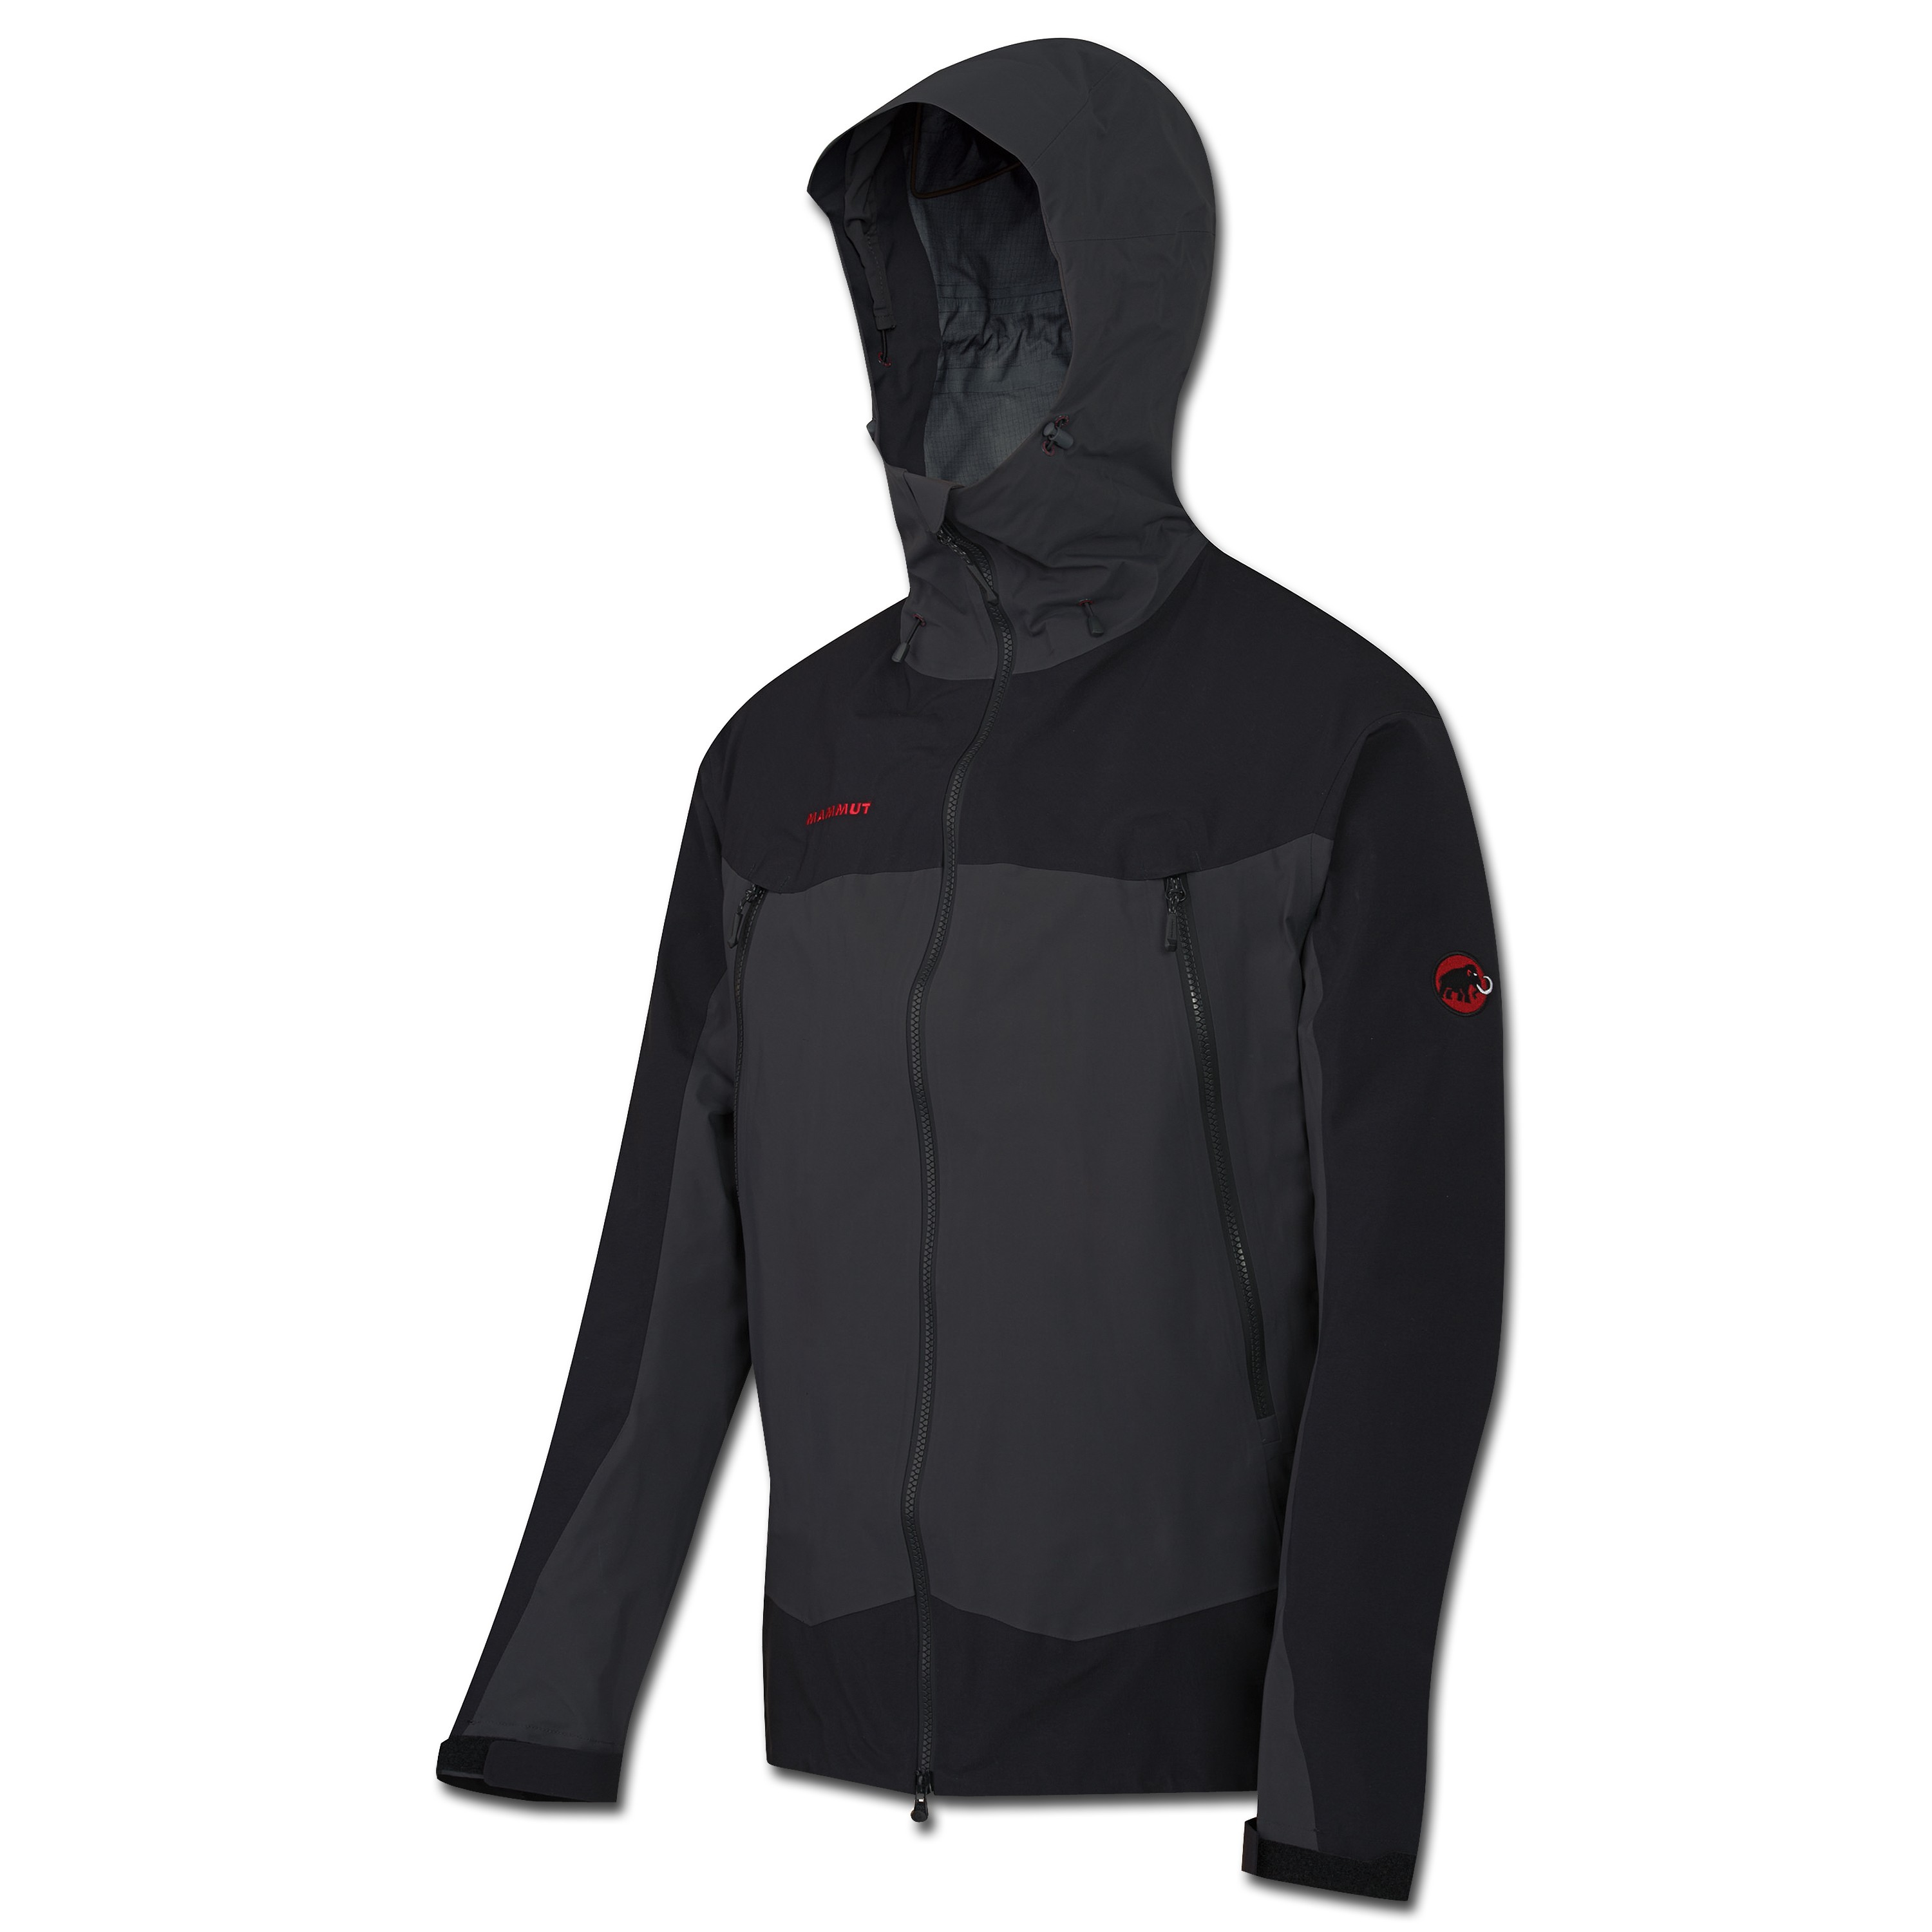 Outdoor Jacket Mammut Meron graphite-black